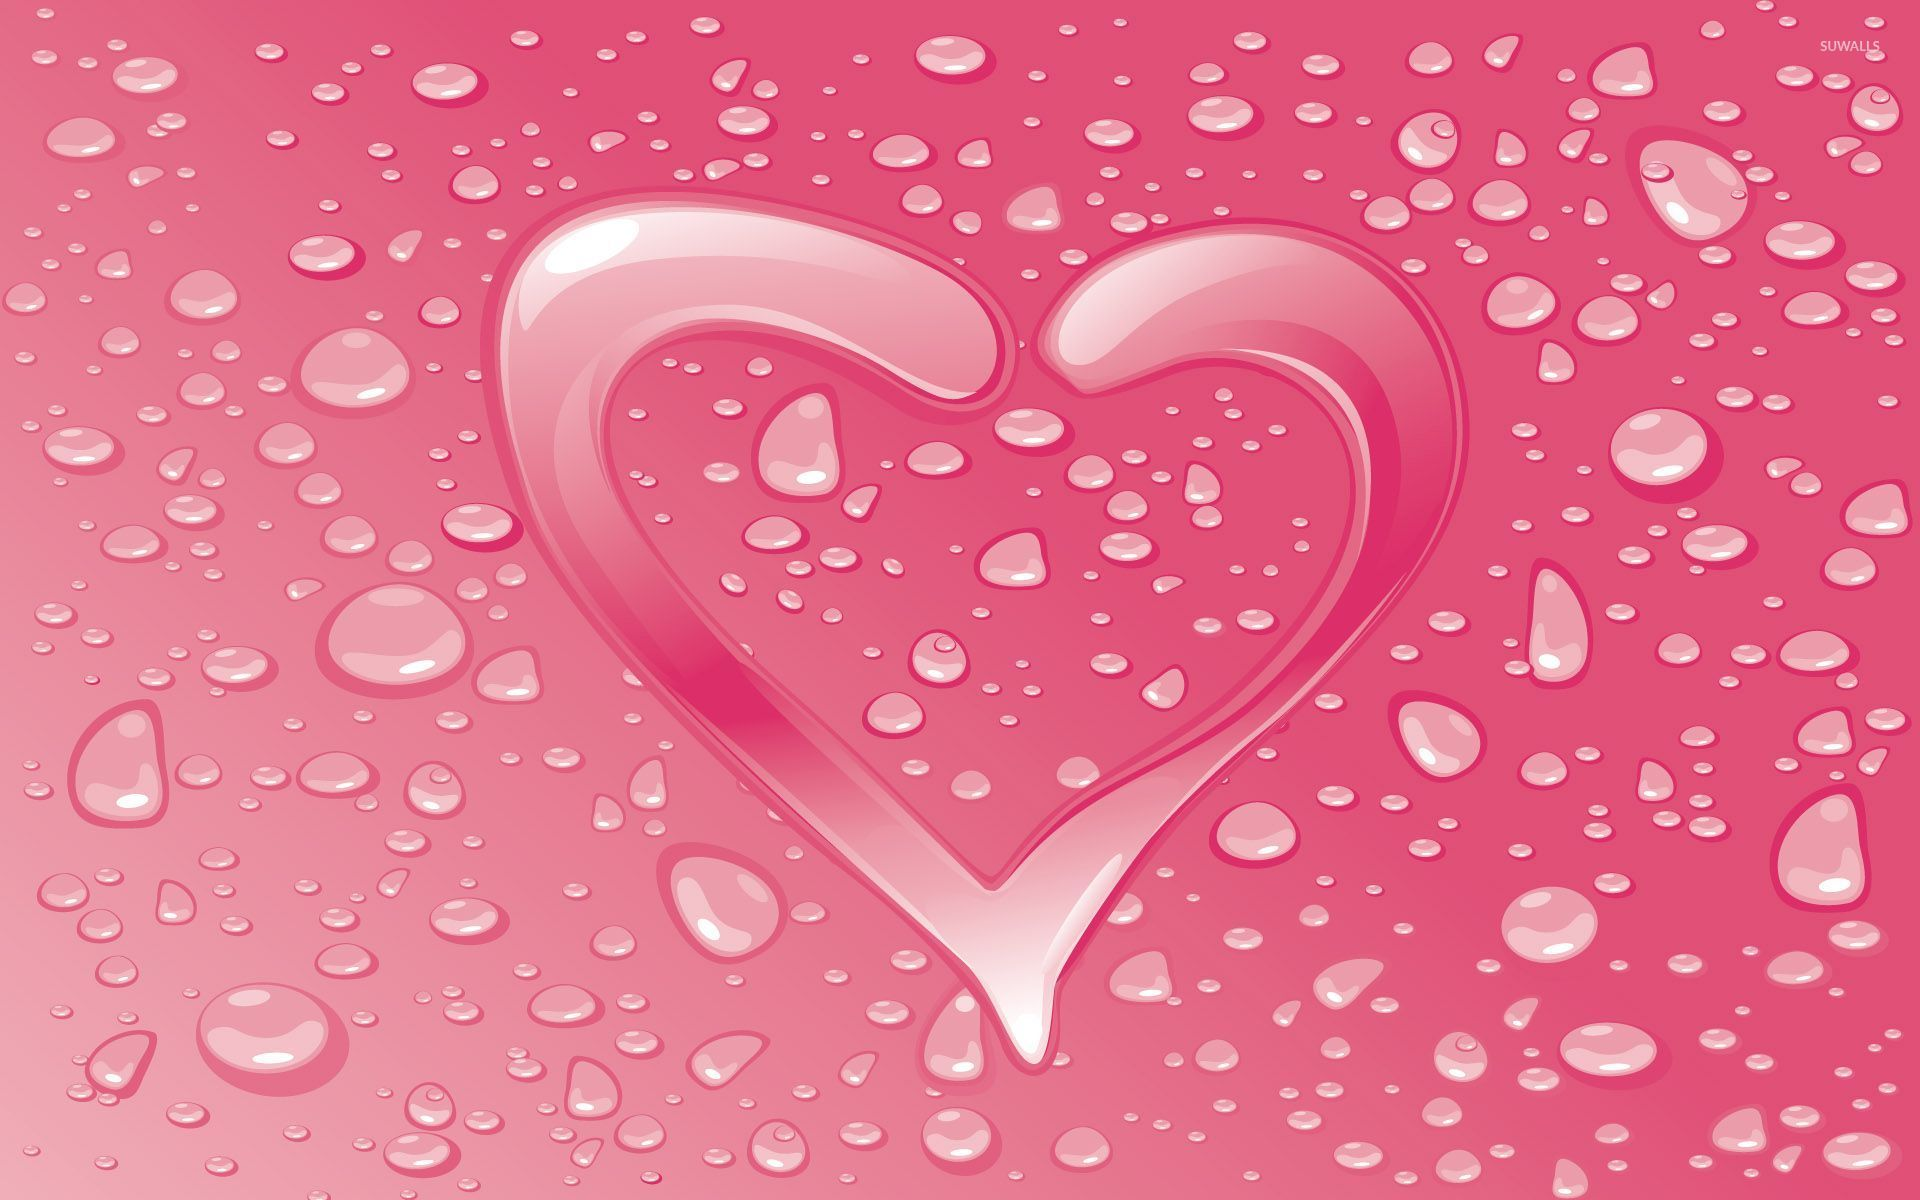 Water drops on the pink heart wallpaper - Digital Art ...